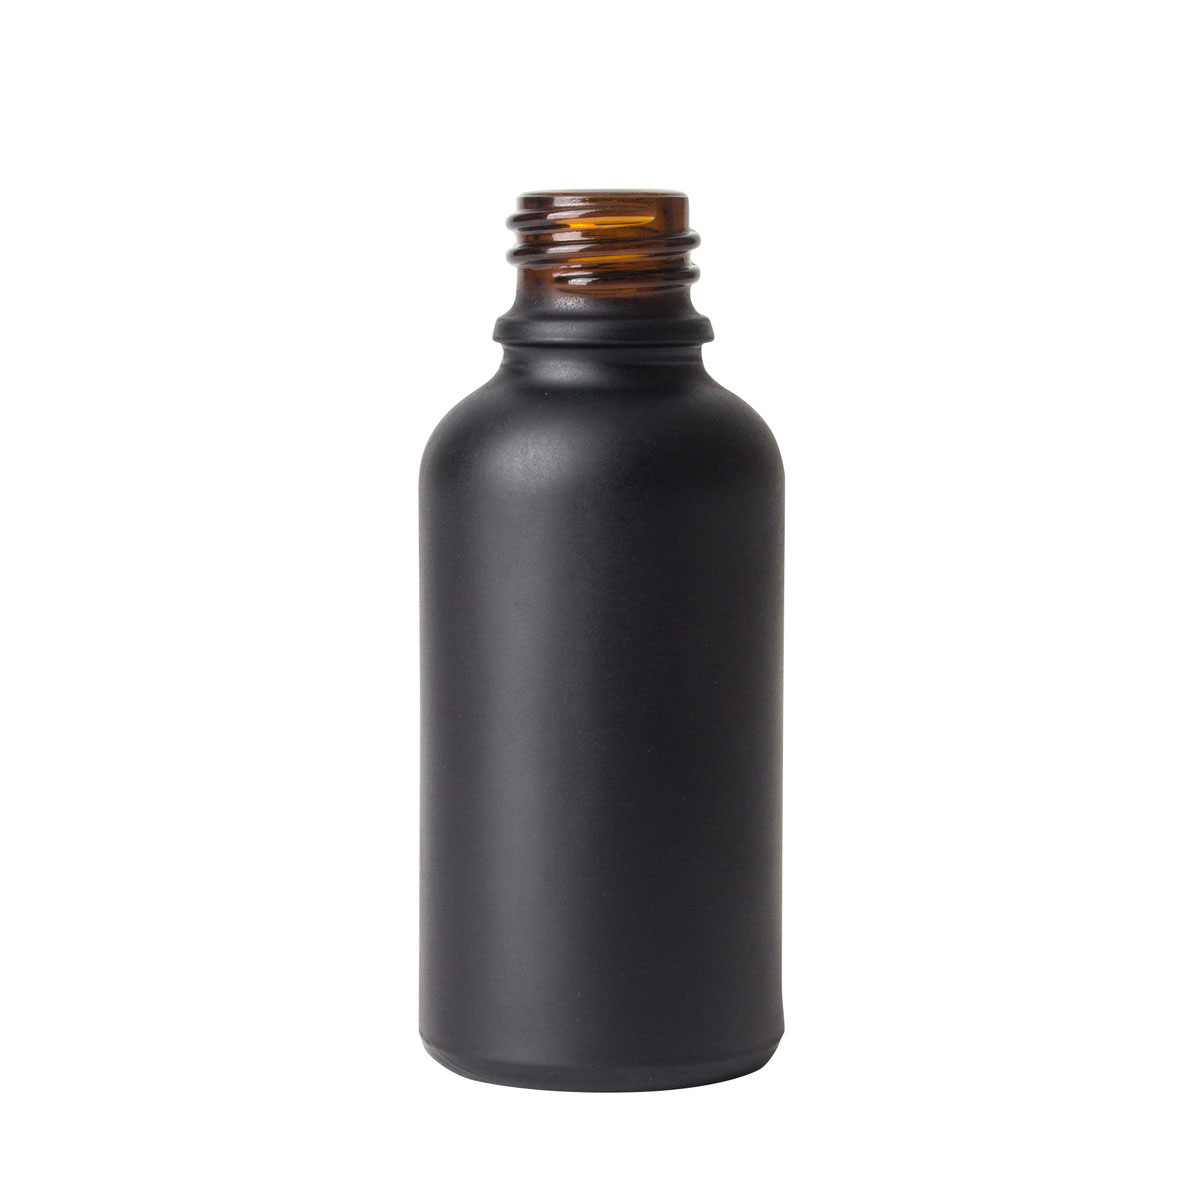 30ml Glass Dropper Bottle In Matte Black (330 Qty.)